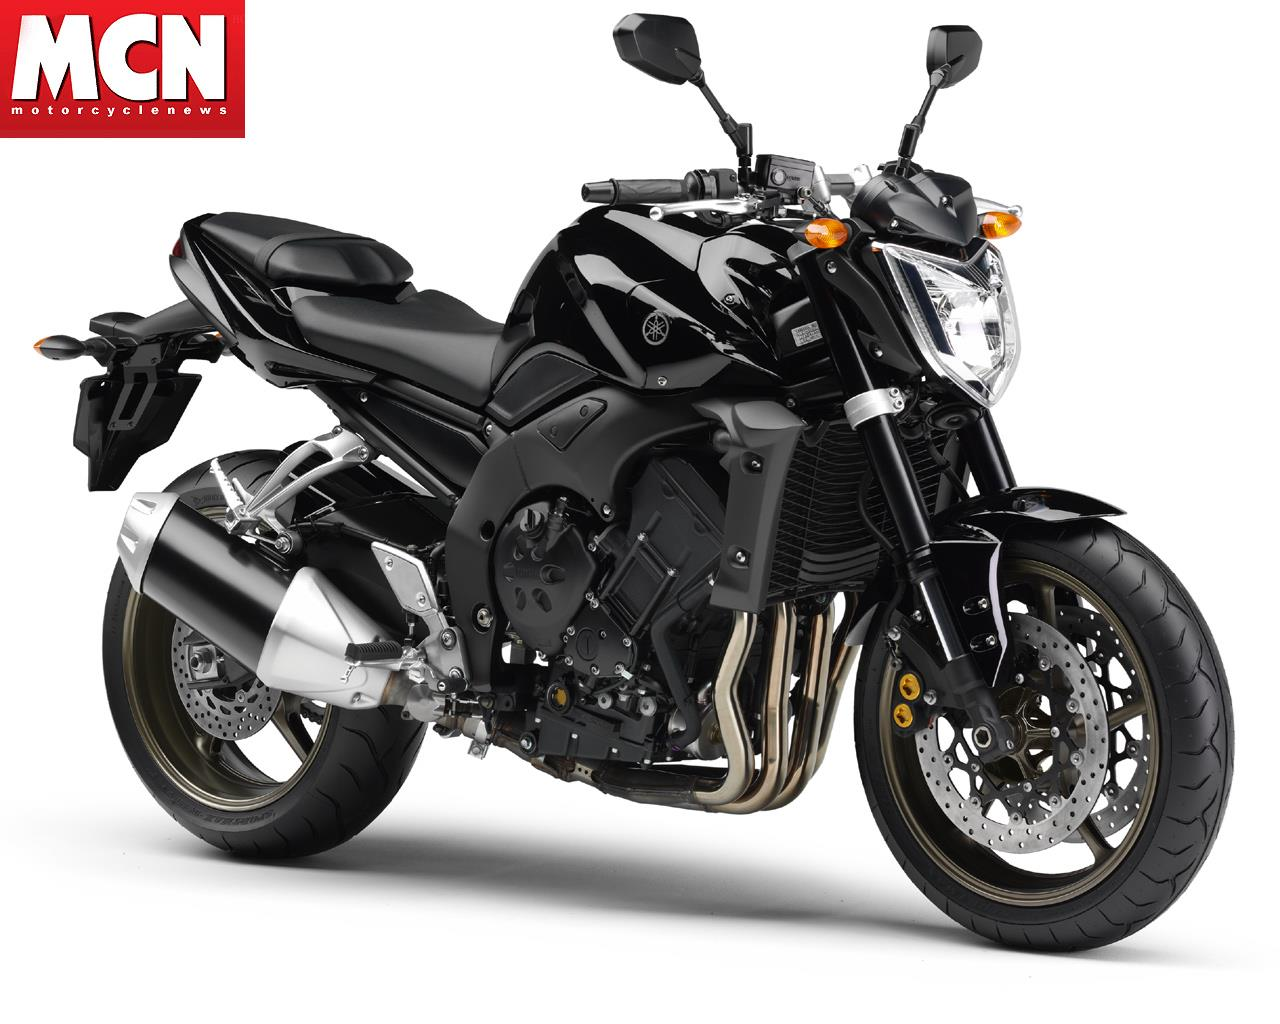 New colours for 2008 yamaha fz1 mcn for 2015 yamaha fz1